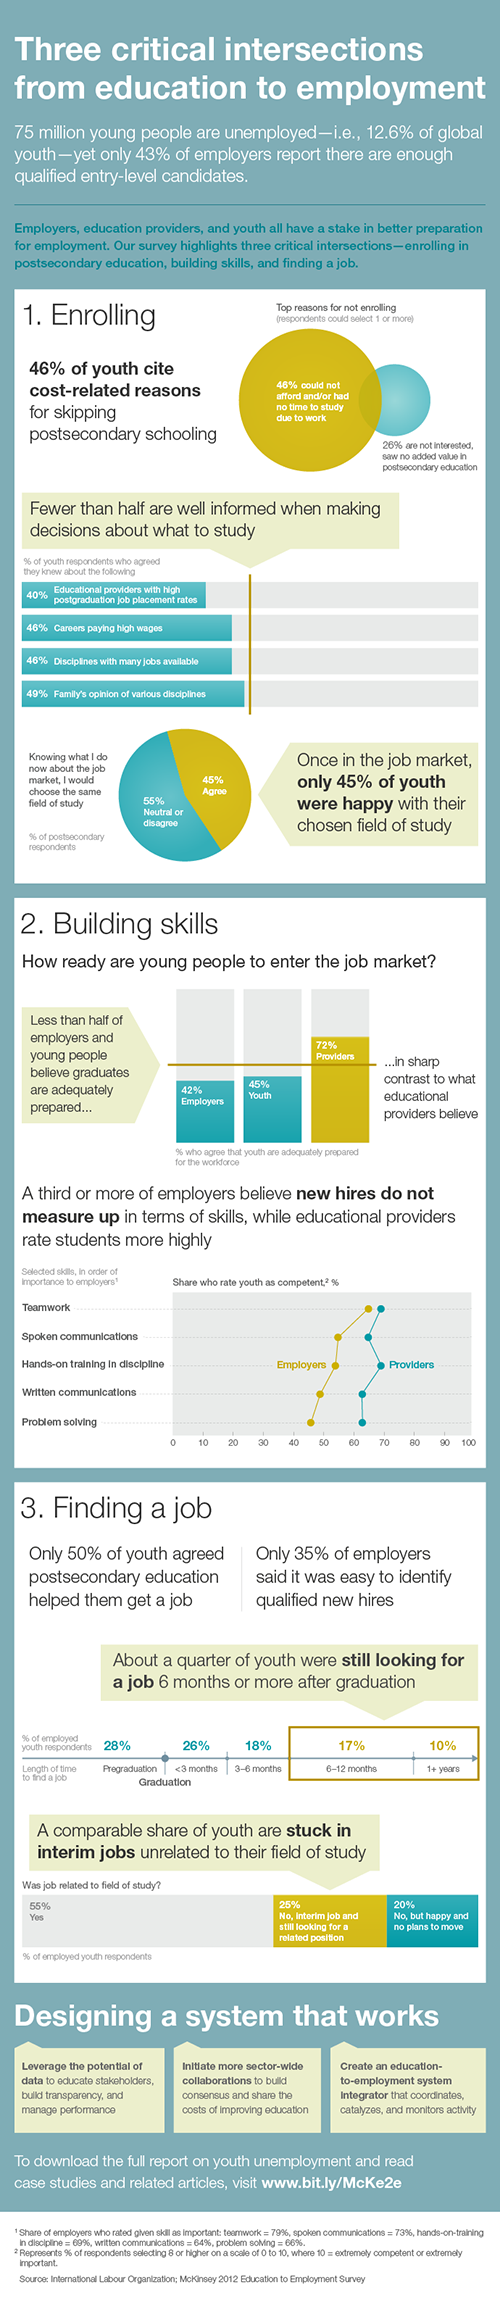 Infographic: Education to Employment: Designing a system that works